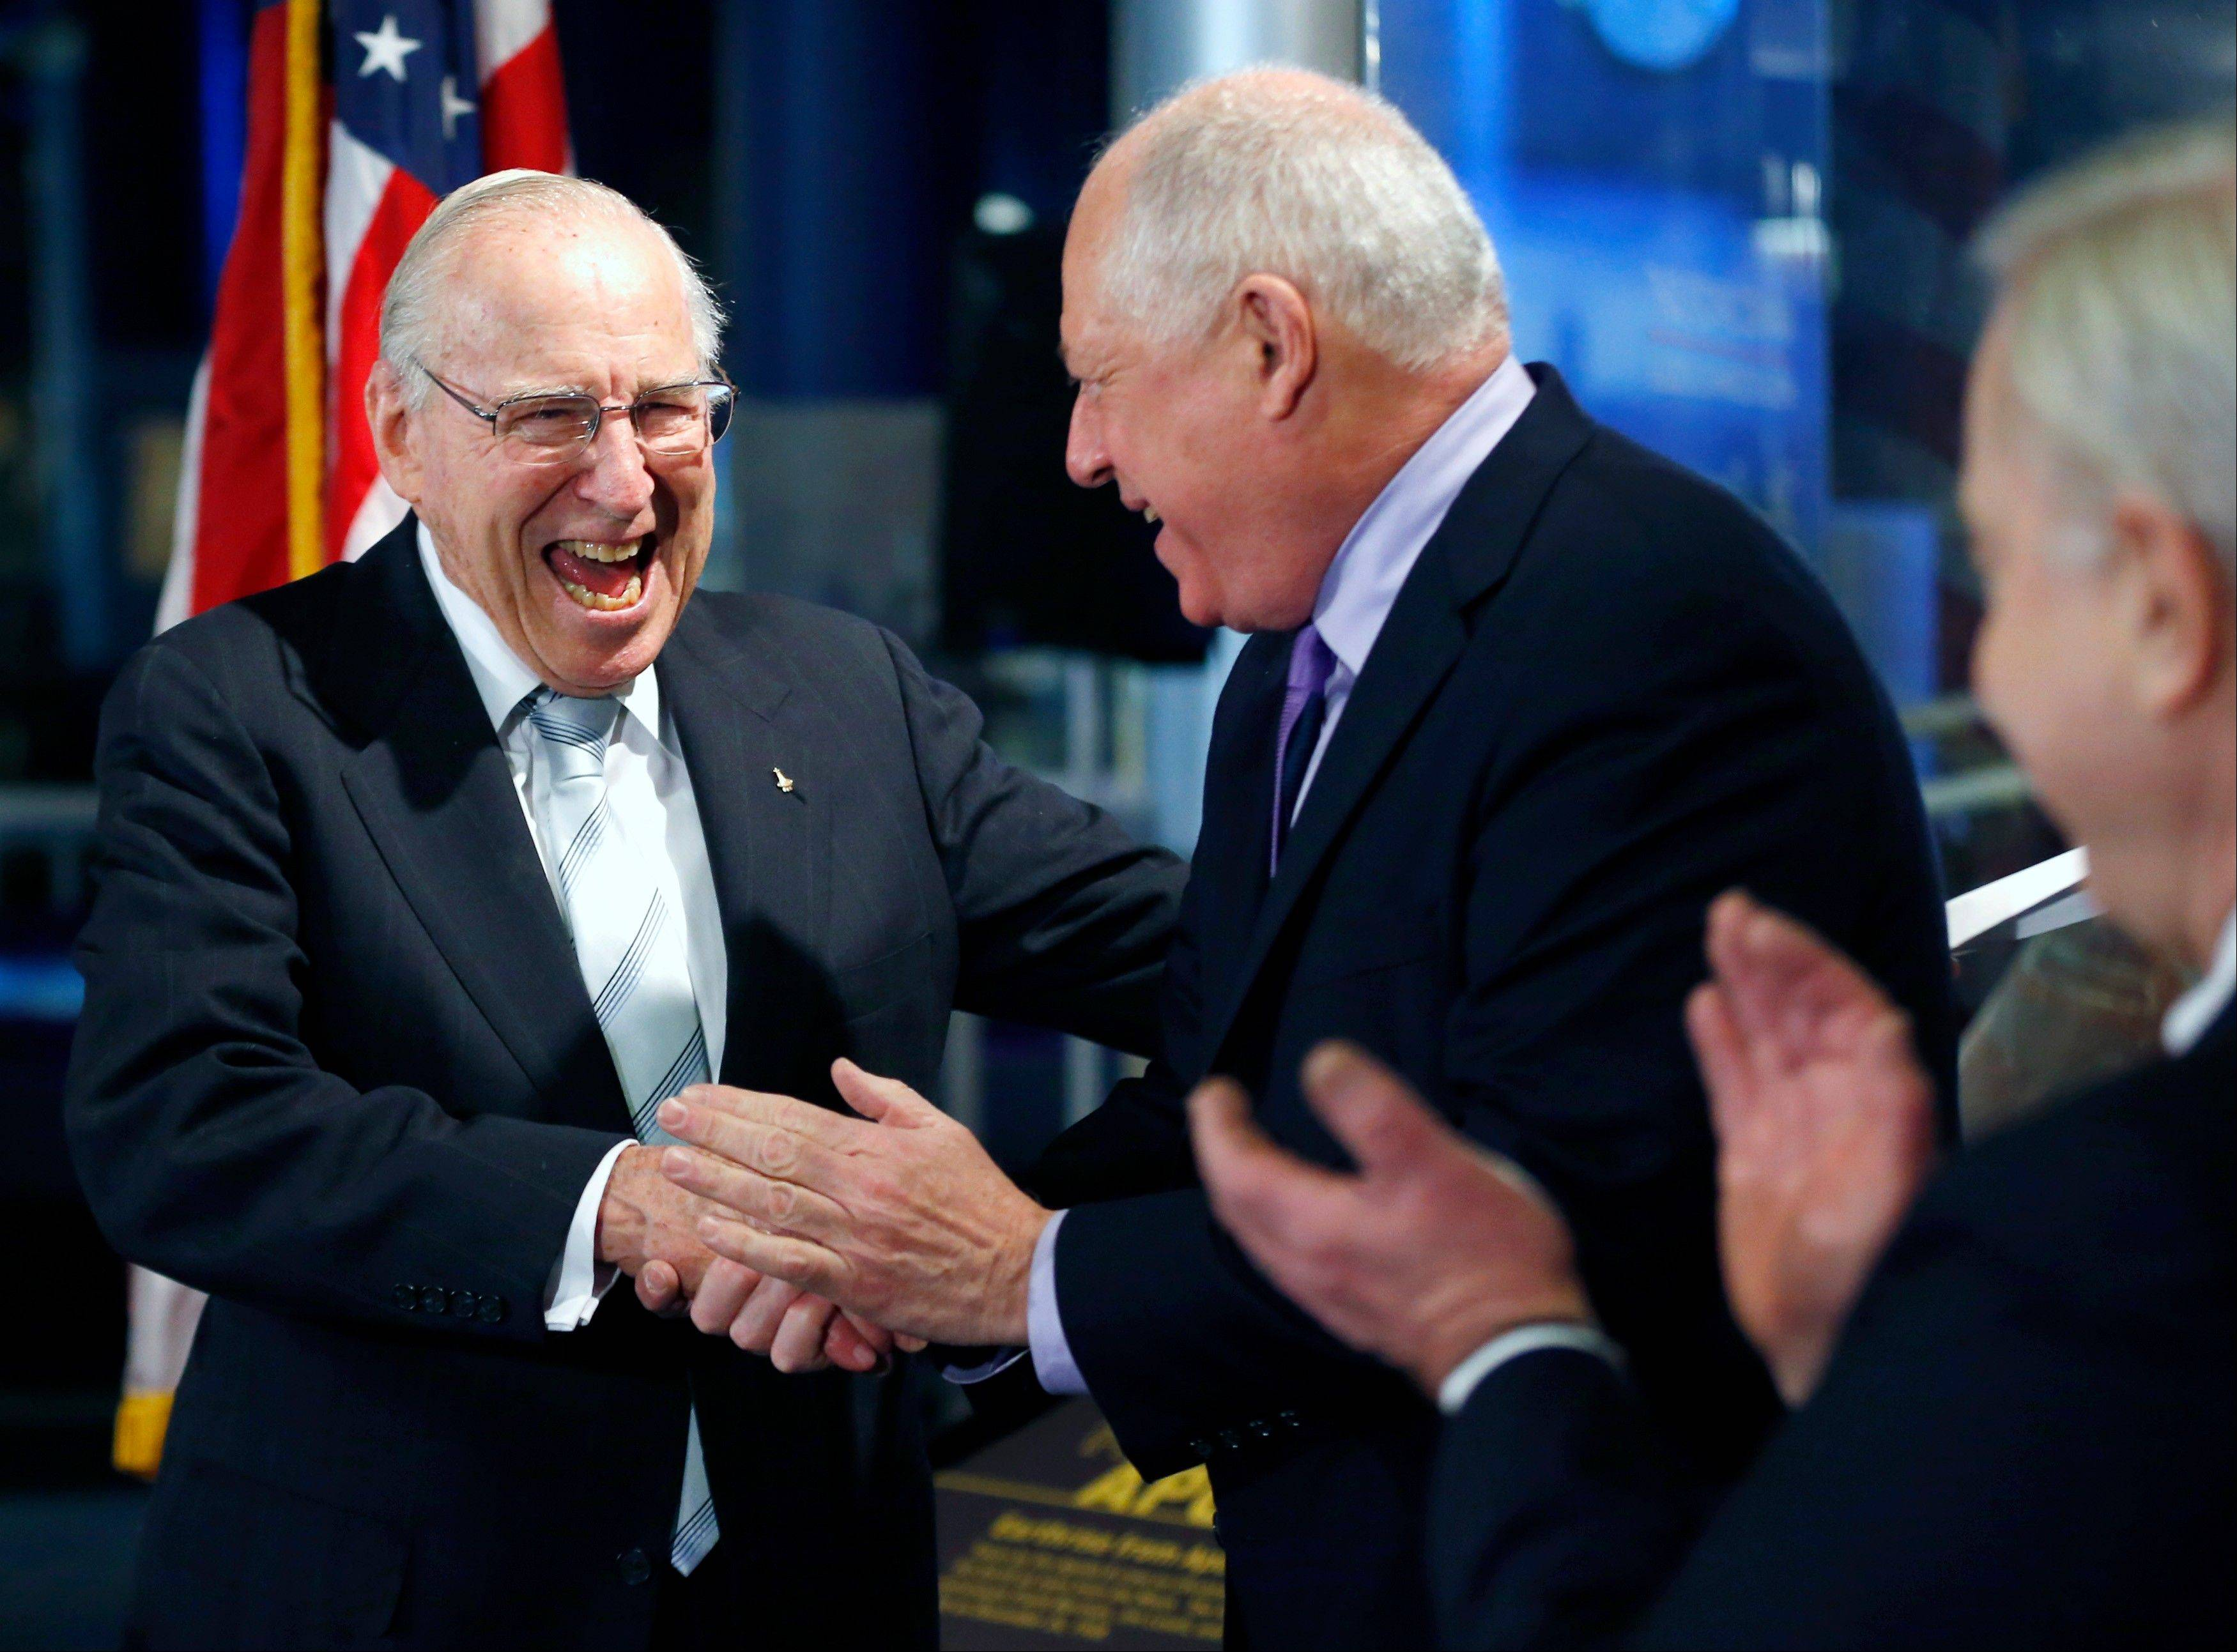 Captain James A. Lovell, Jr., left, shares a laugh with Gov. Pat Quinn, center, and David R. Mosena, CEO of Chicago�s Museum of Science and Industry,, during the 45th anniversary of Apollo 8 �Christmas Eve Broadcast to Earth� event Monday at the museum.